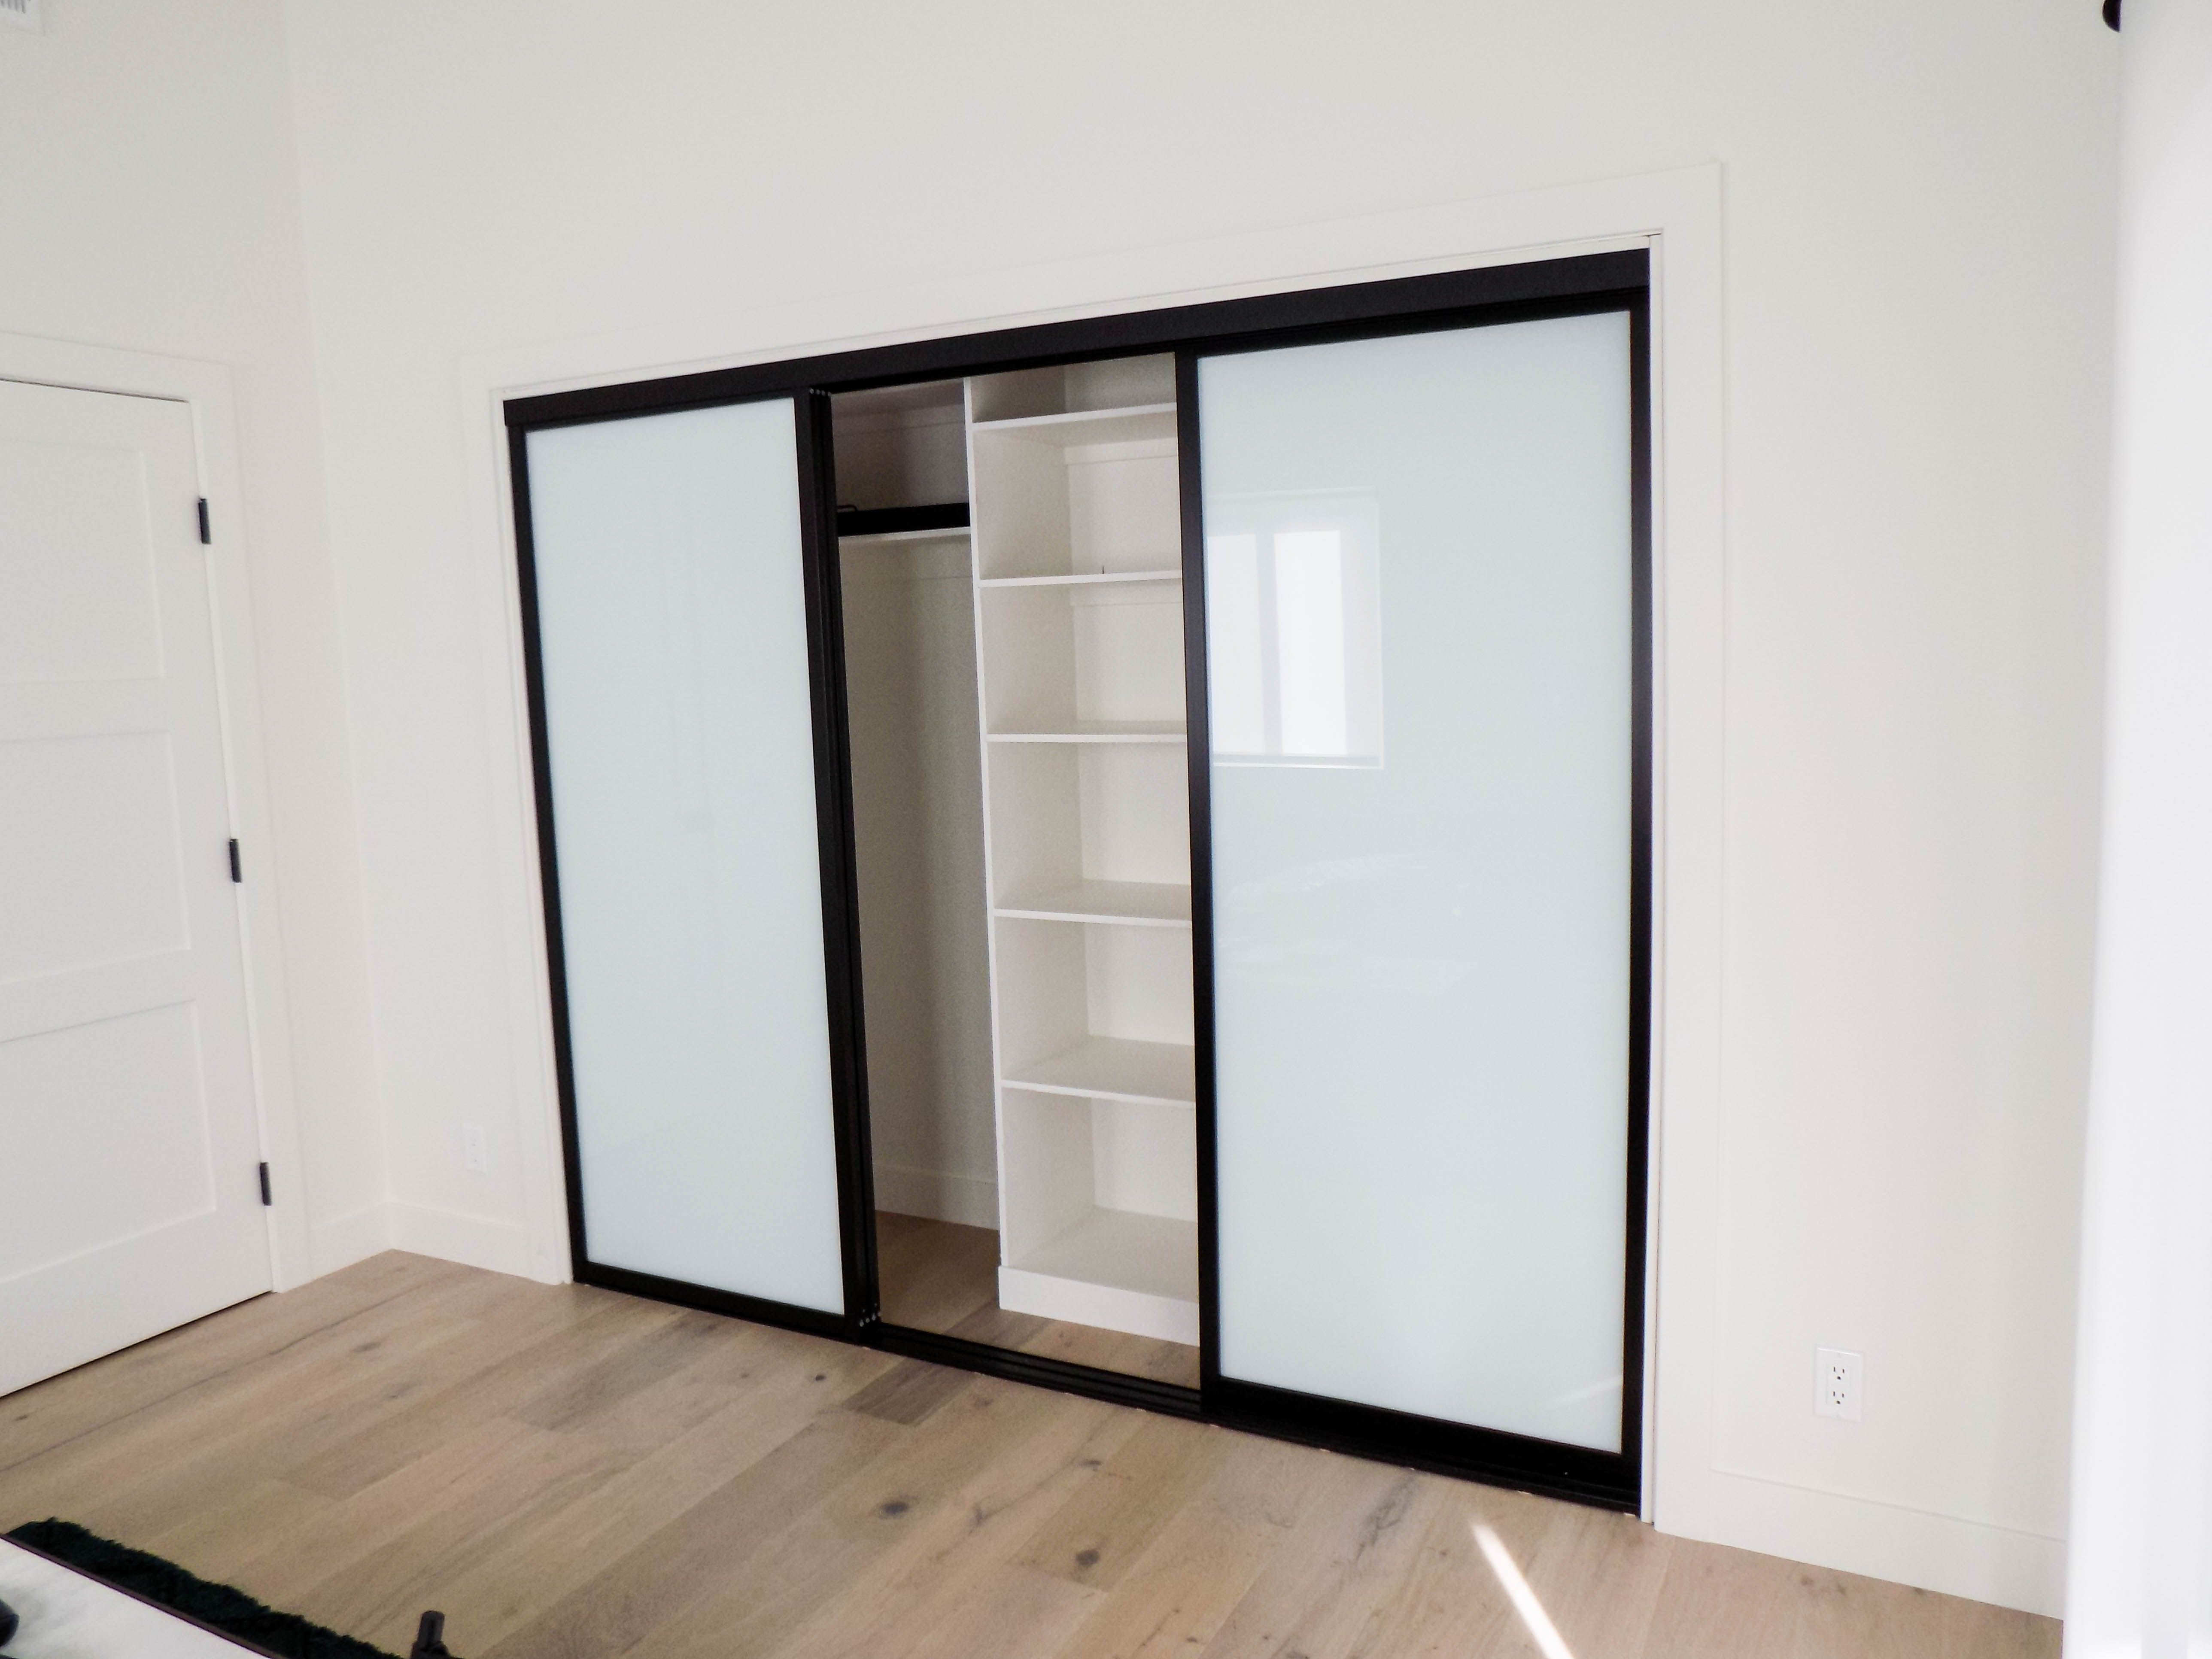 Check Out These 3 Track 3 Panel Closet Doors With Black Frames And Laminated Glass That Our Guys Installed S Closet Doors Sliding Closet Doors White Laminate